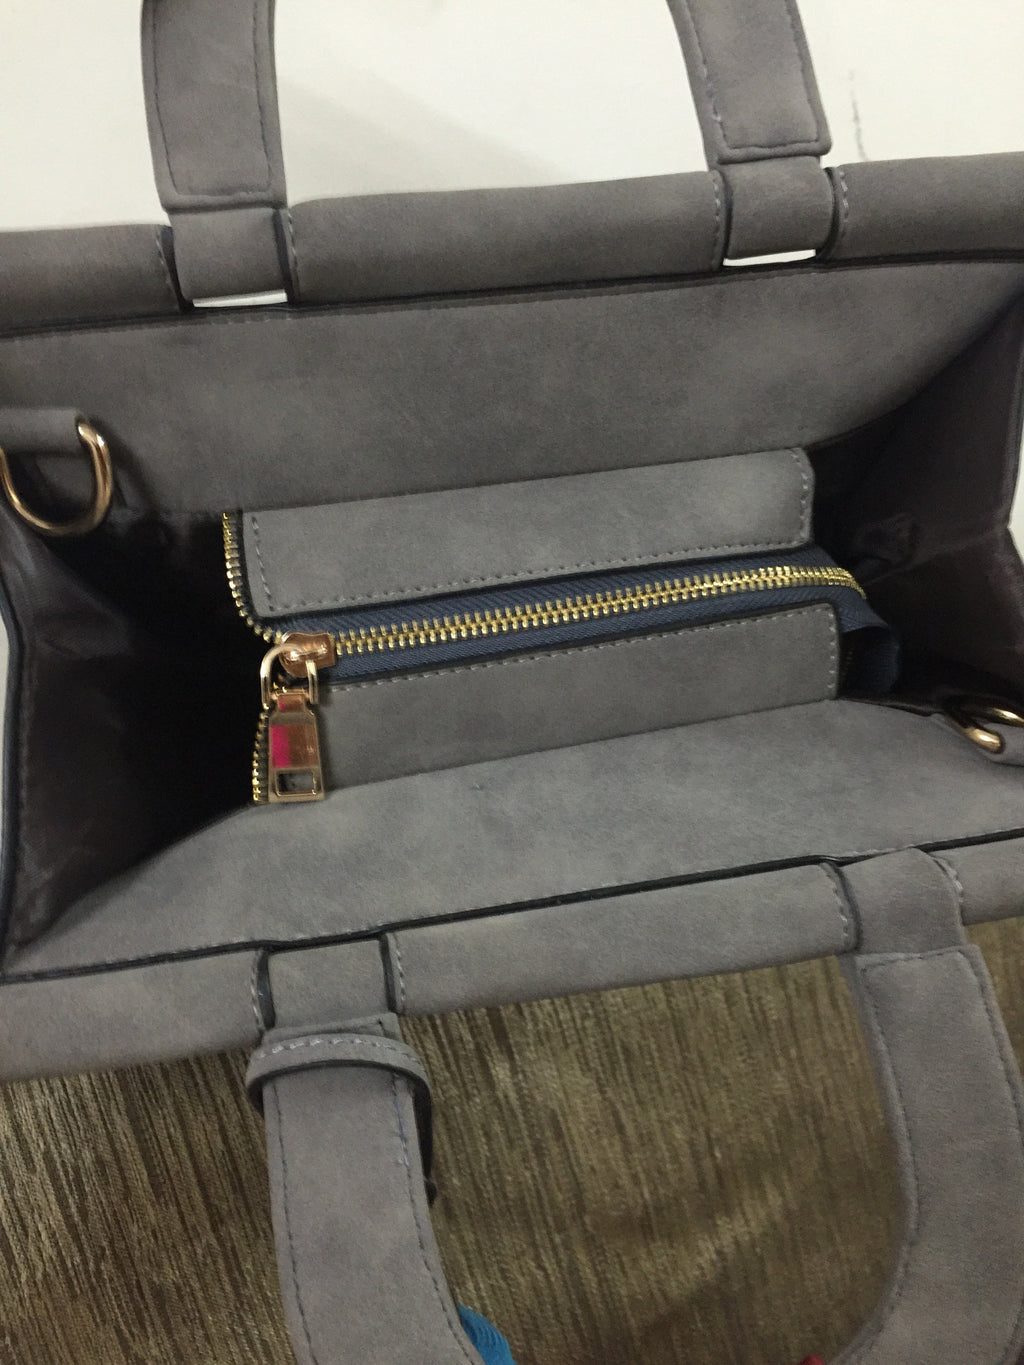 Grey Suede Bag - #FTFY - For The Fun Years